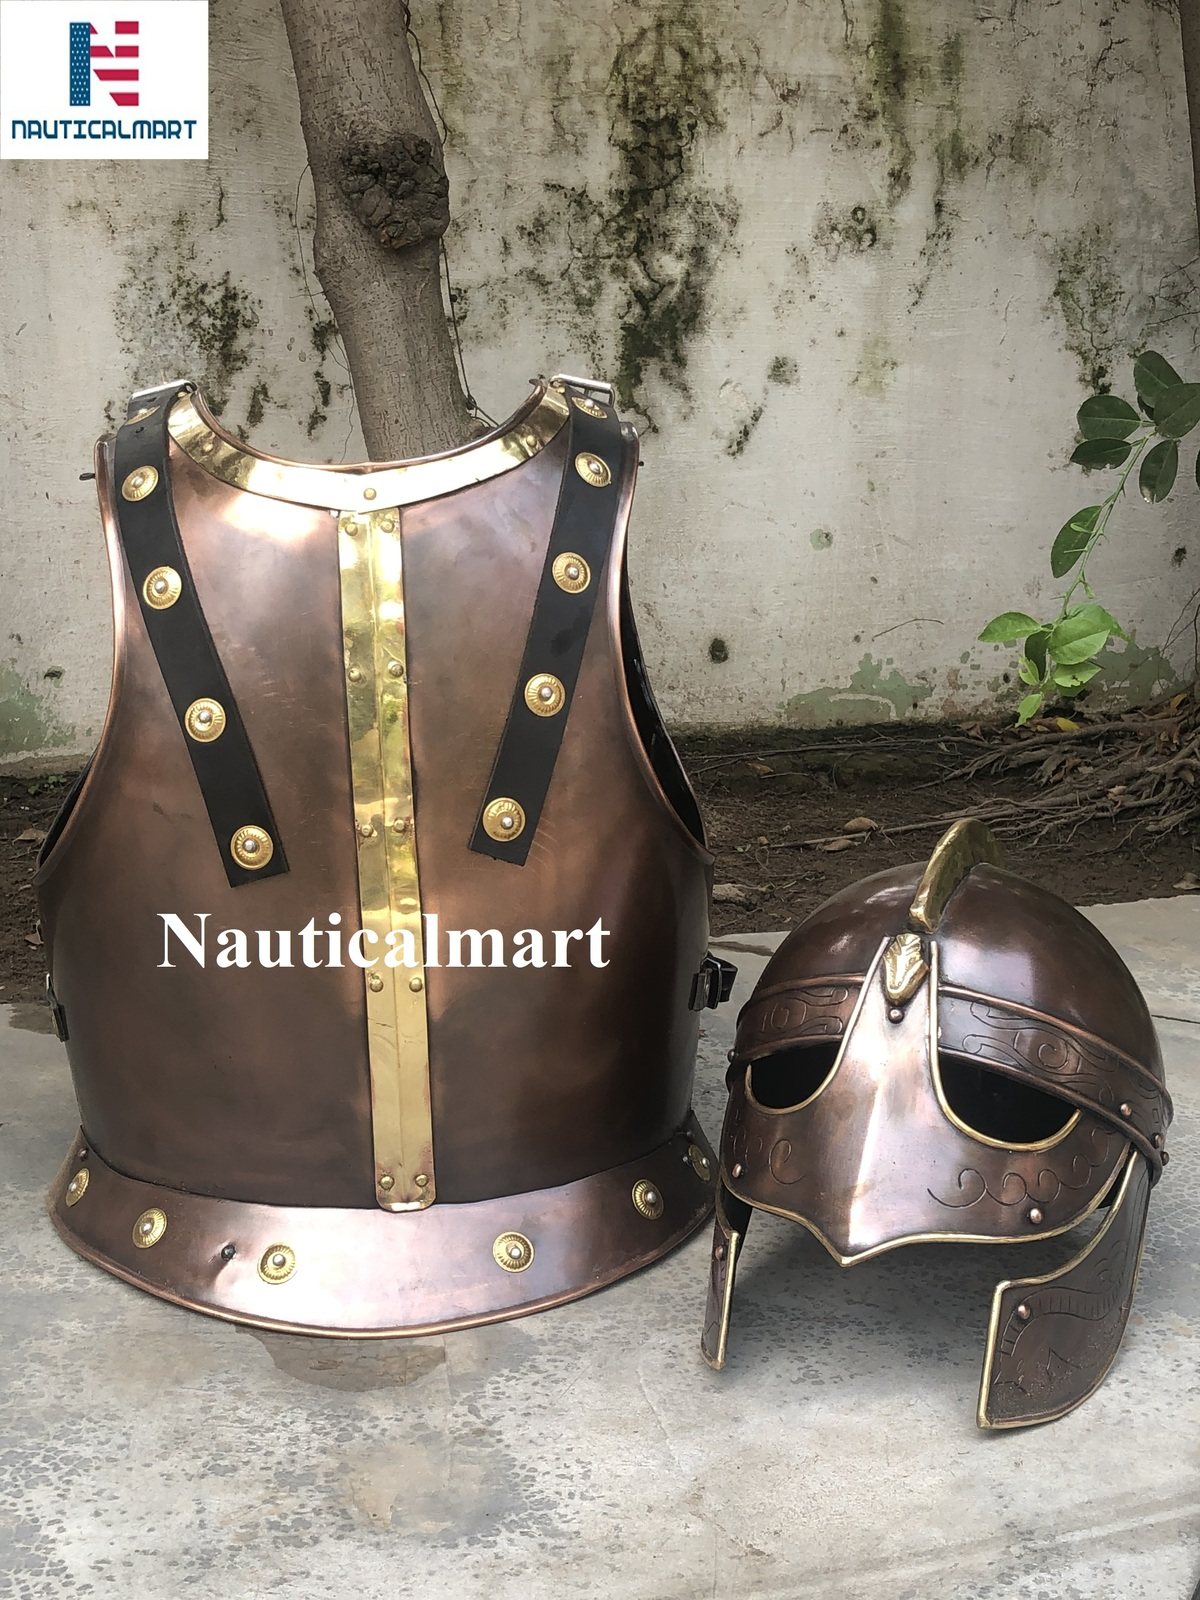 Primary image for Nauticalmart Halloween Armor Breastplate With Valsgrade Helmet In Copper